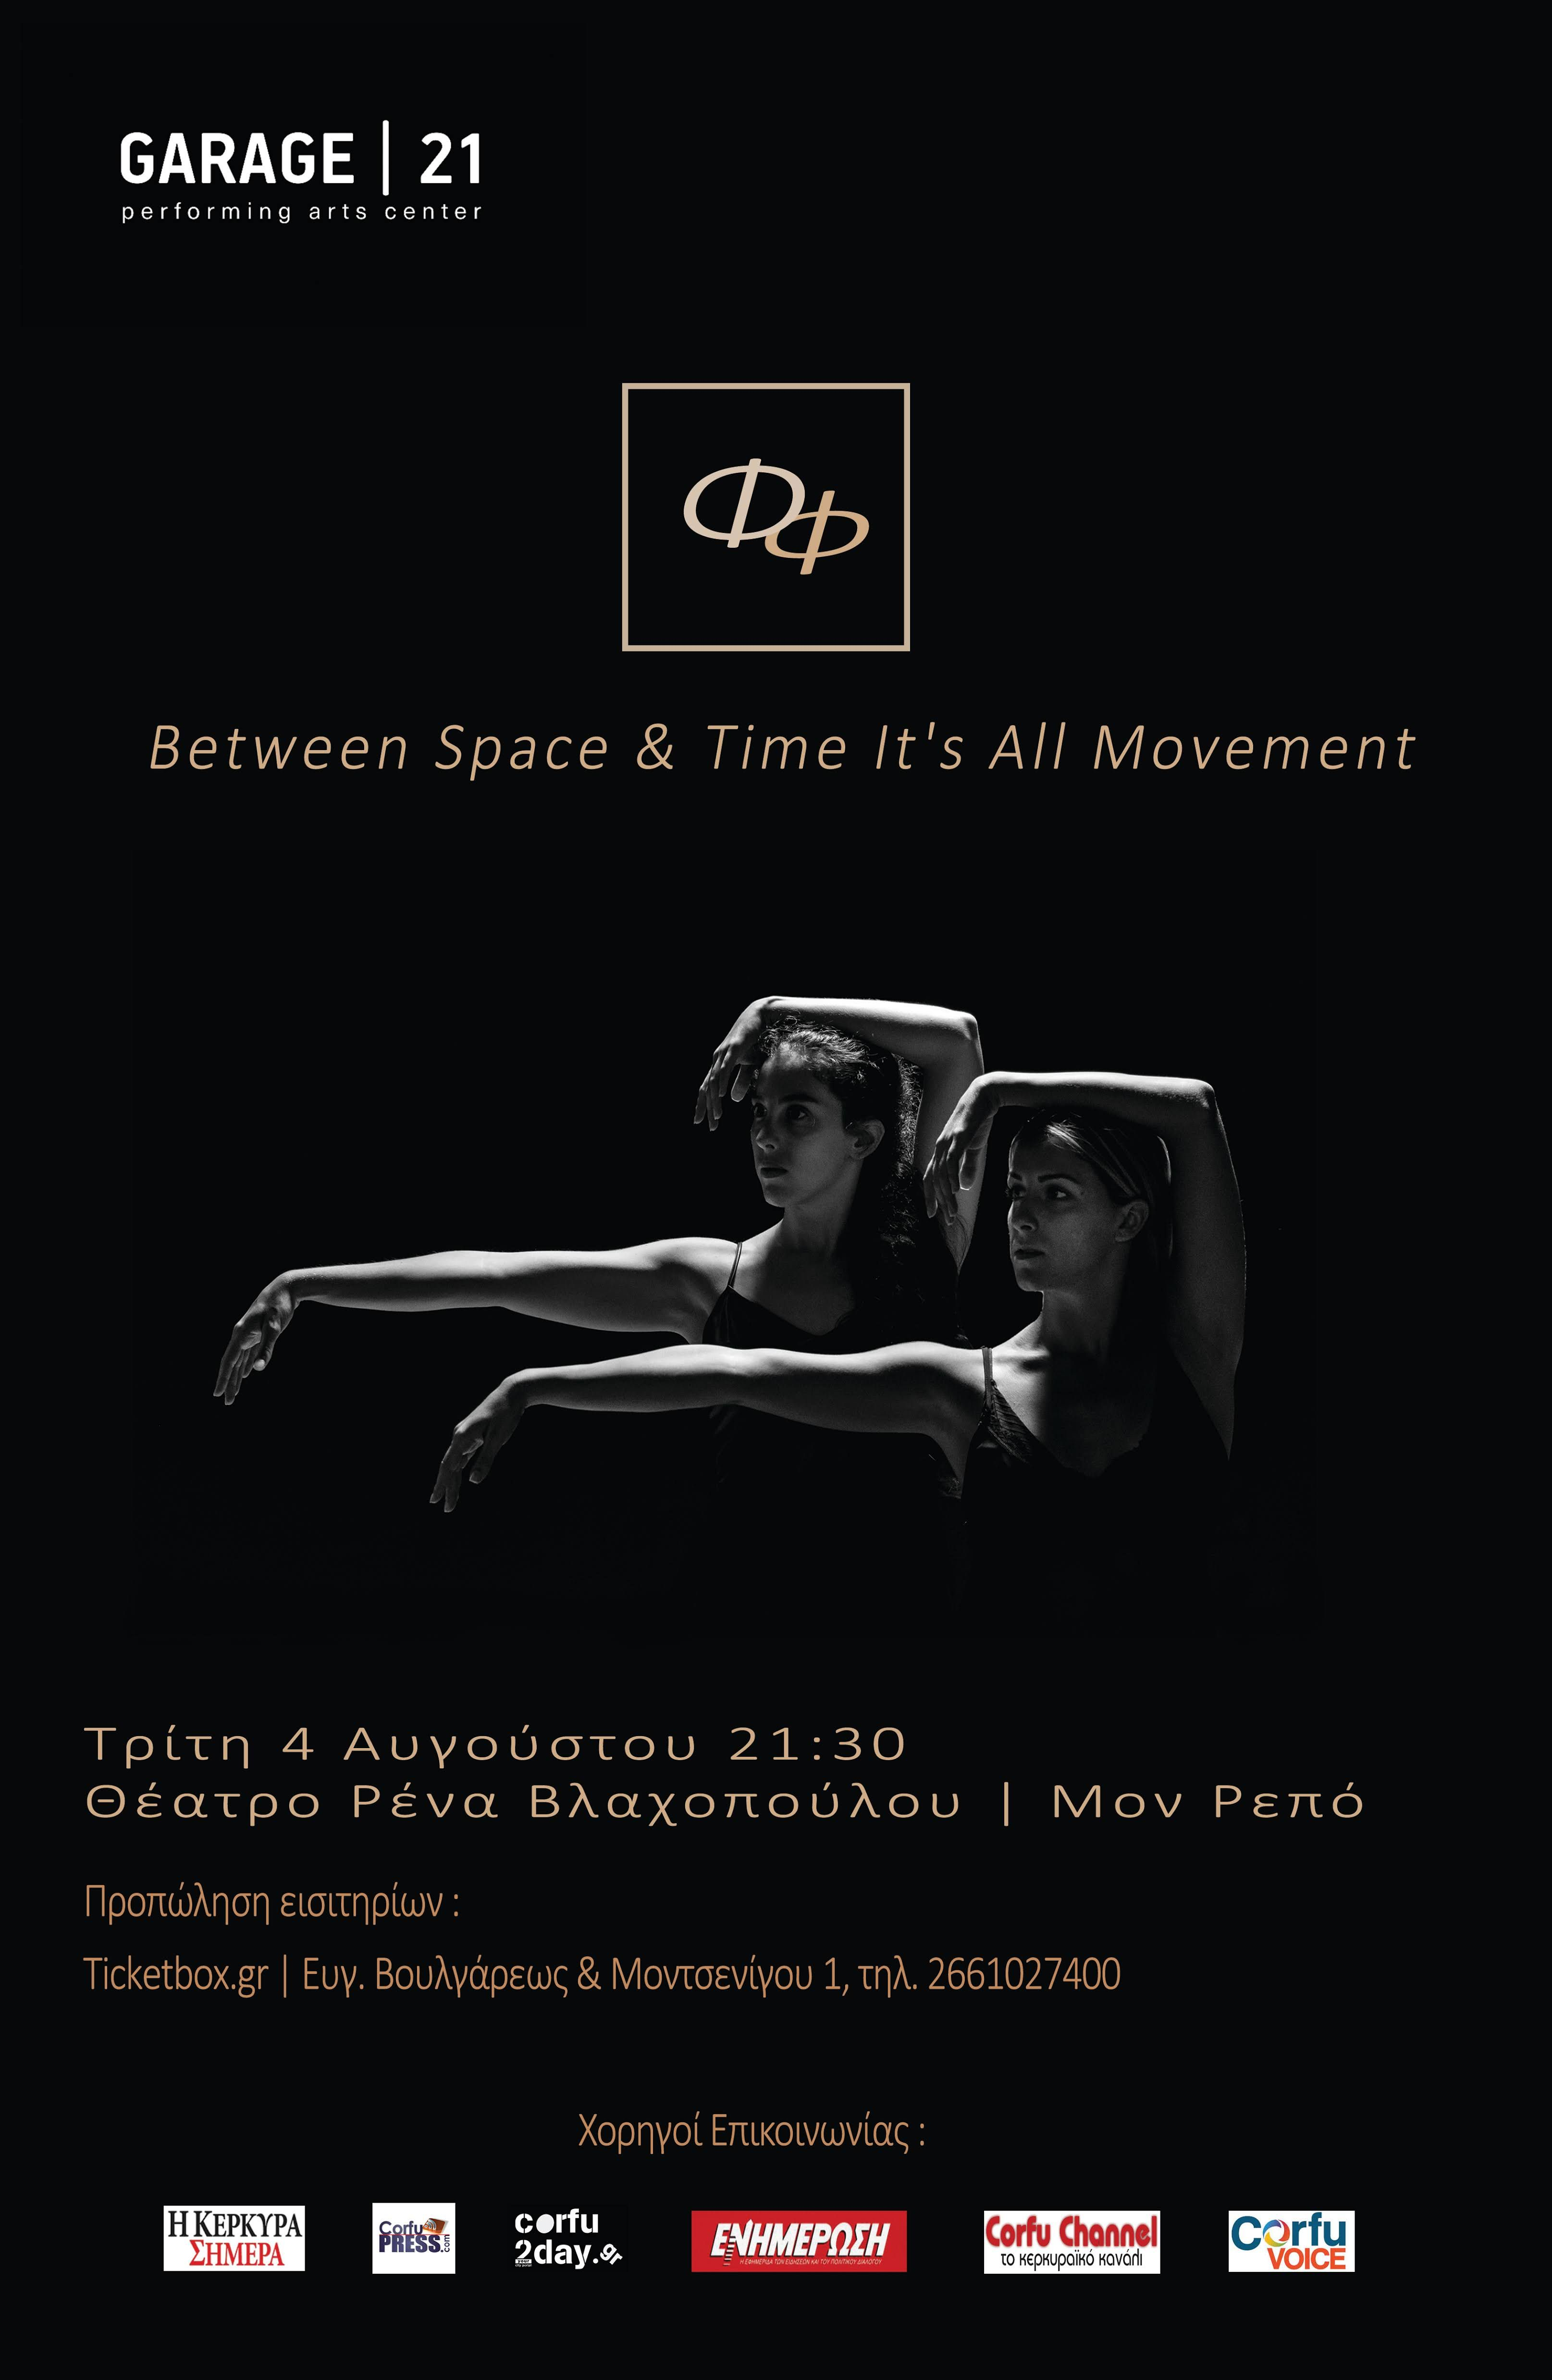 Garage 21: «Φφ – Between Space & Time it's all Movement» απόψε στο Μον Ρεπό (video)